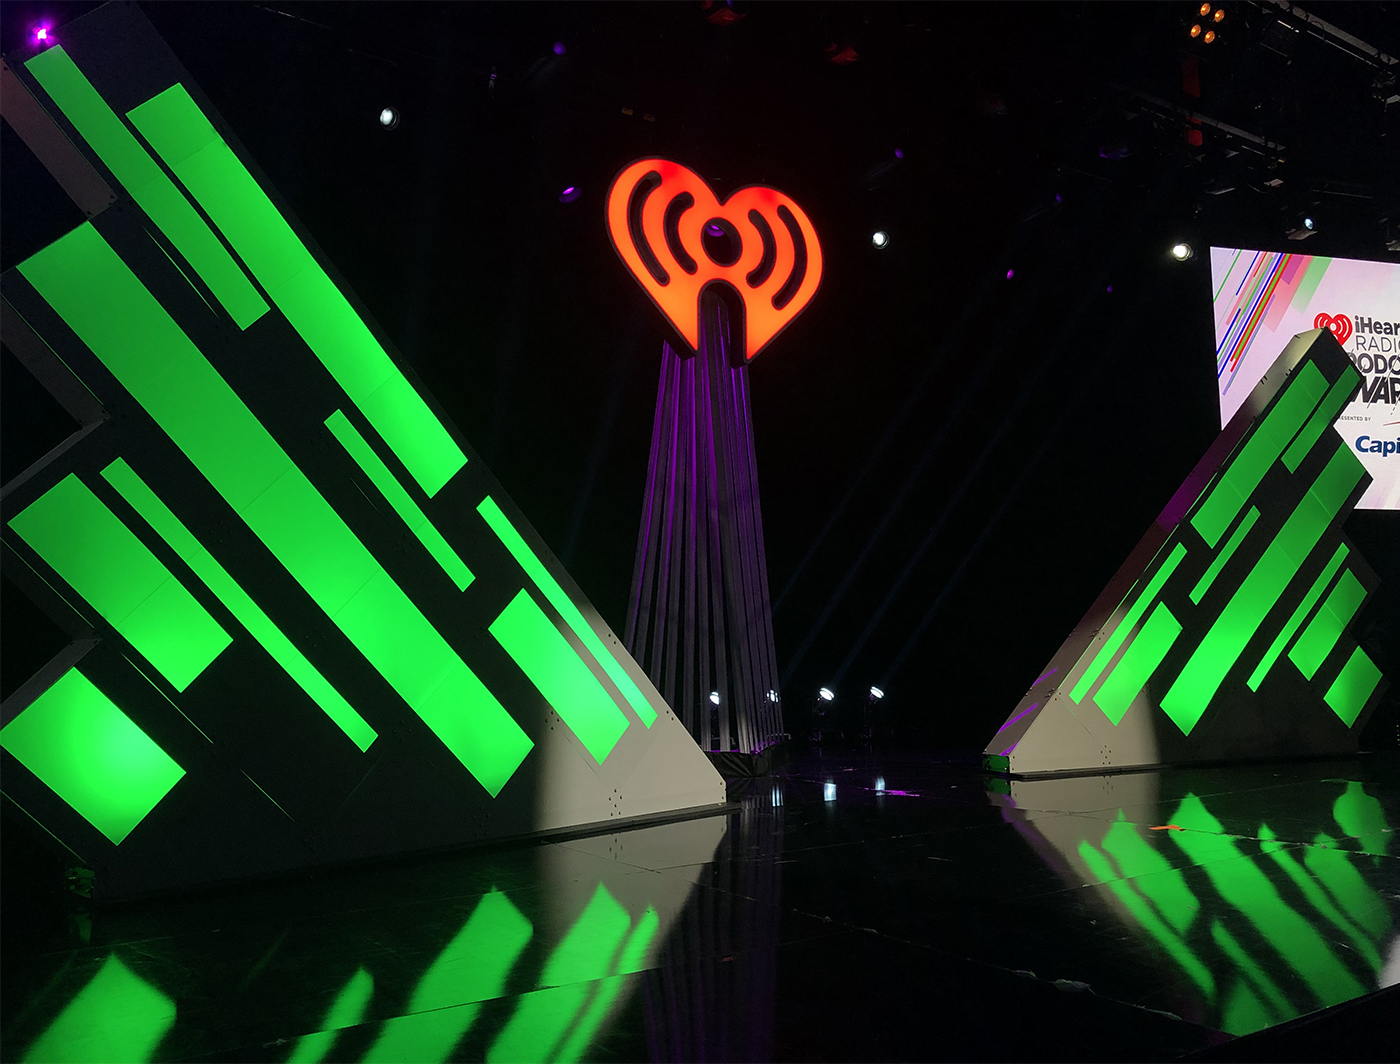 Frosty SuperShapes at the iHeartRadio Podcast Awards